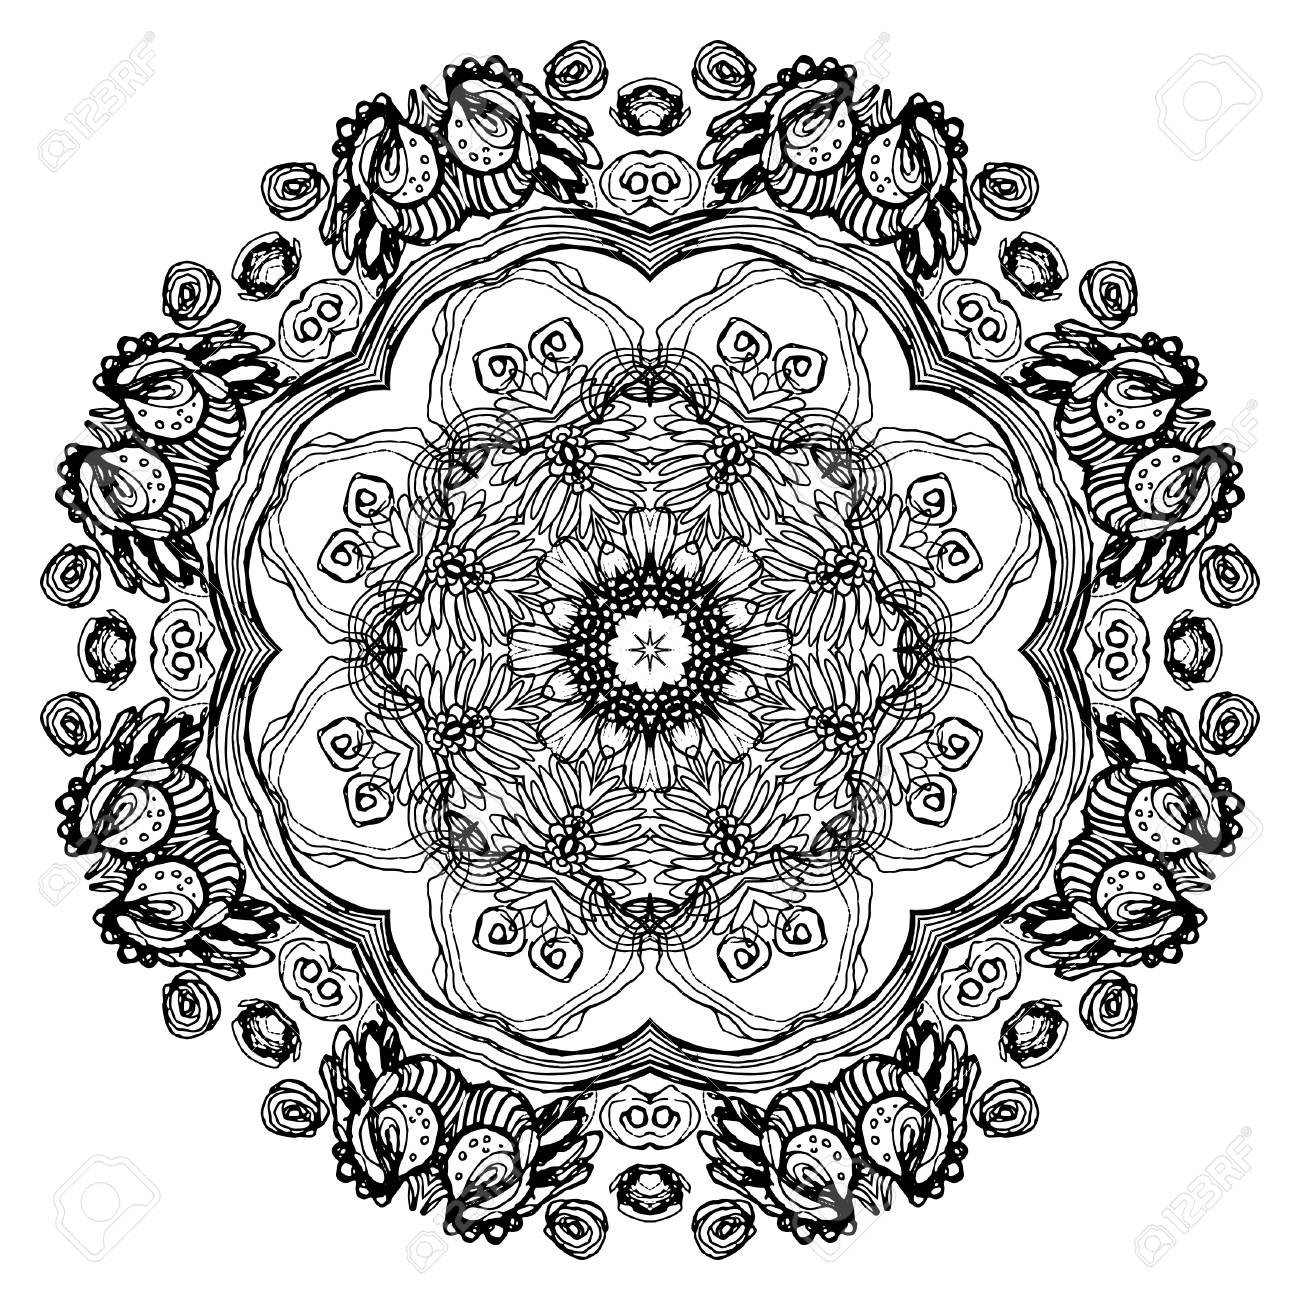 Round ornament for coloring book for adults and kids mandala ethnic decorative element